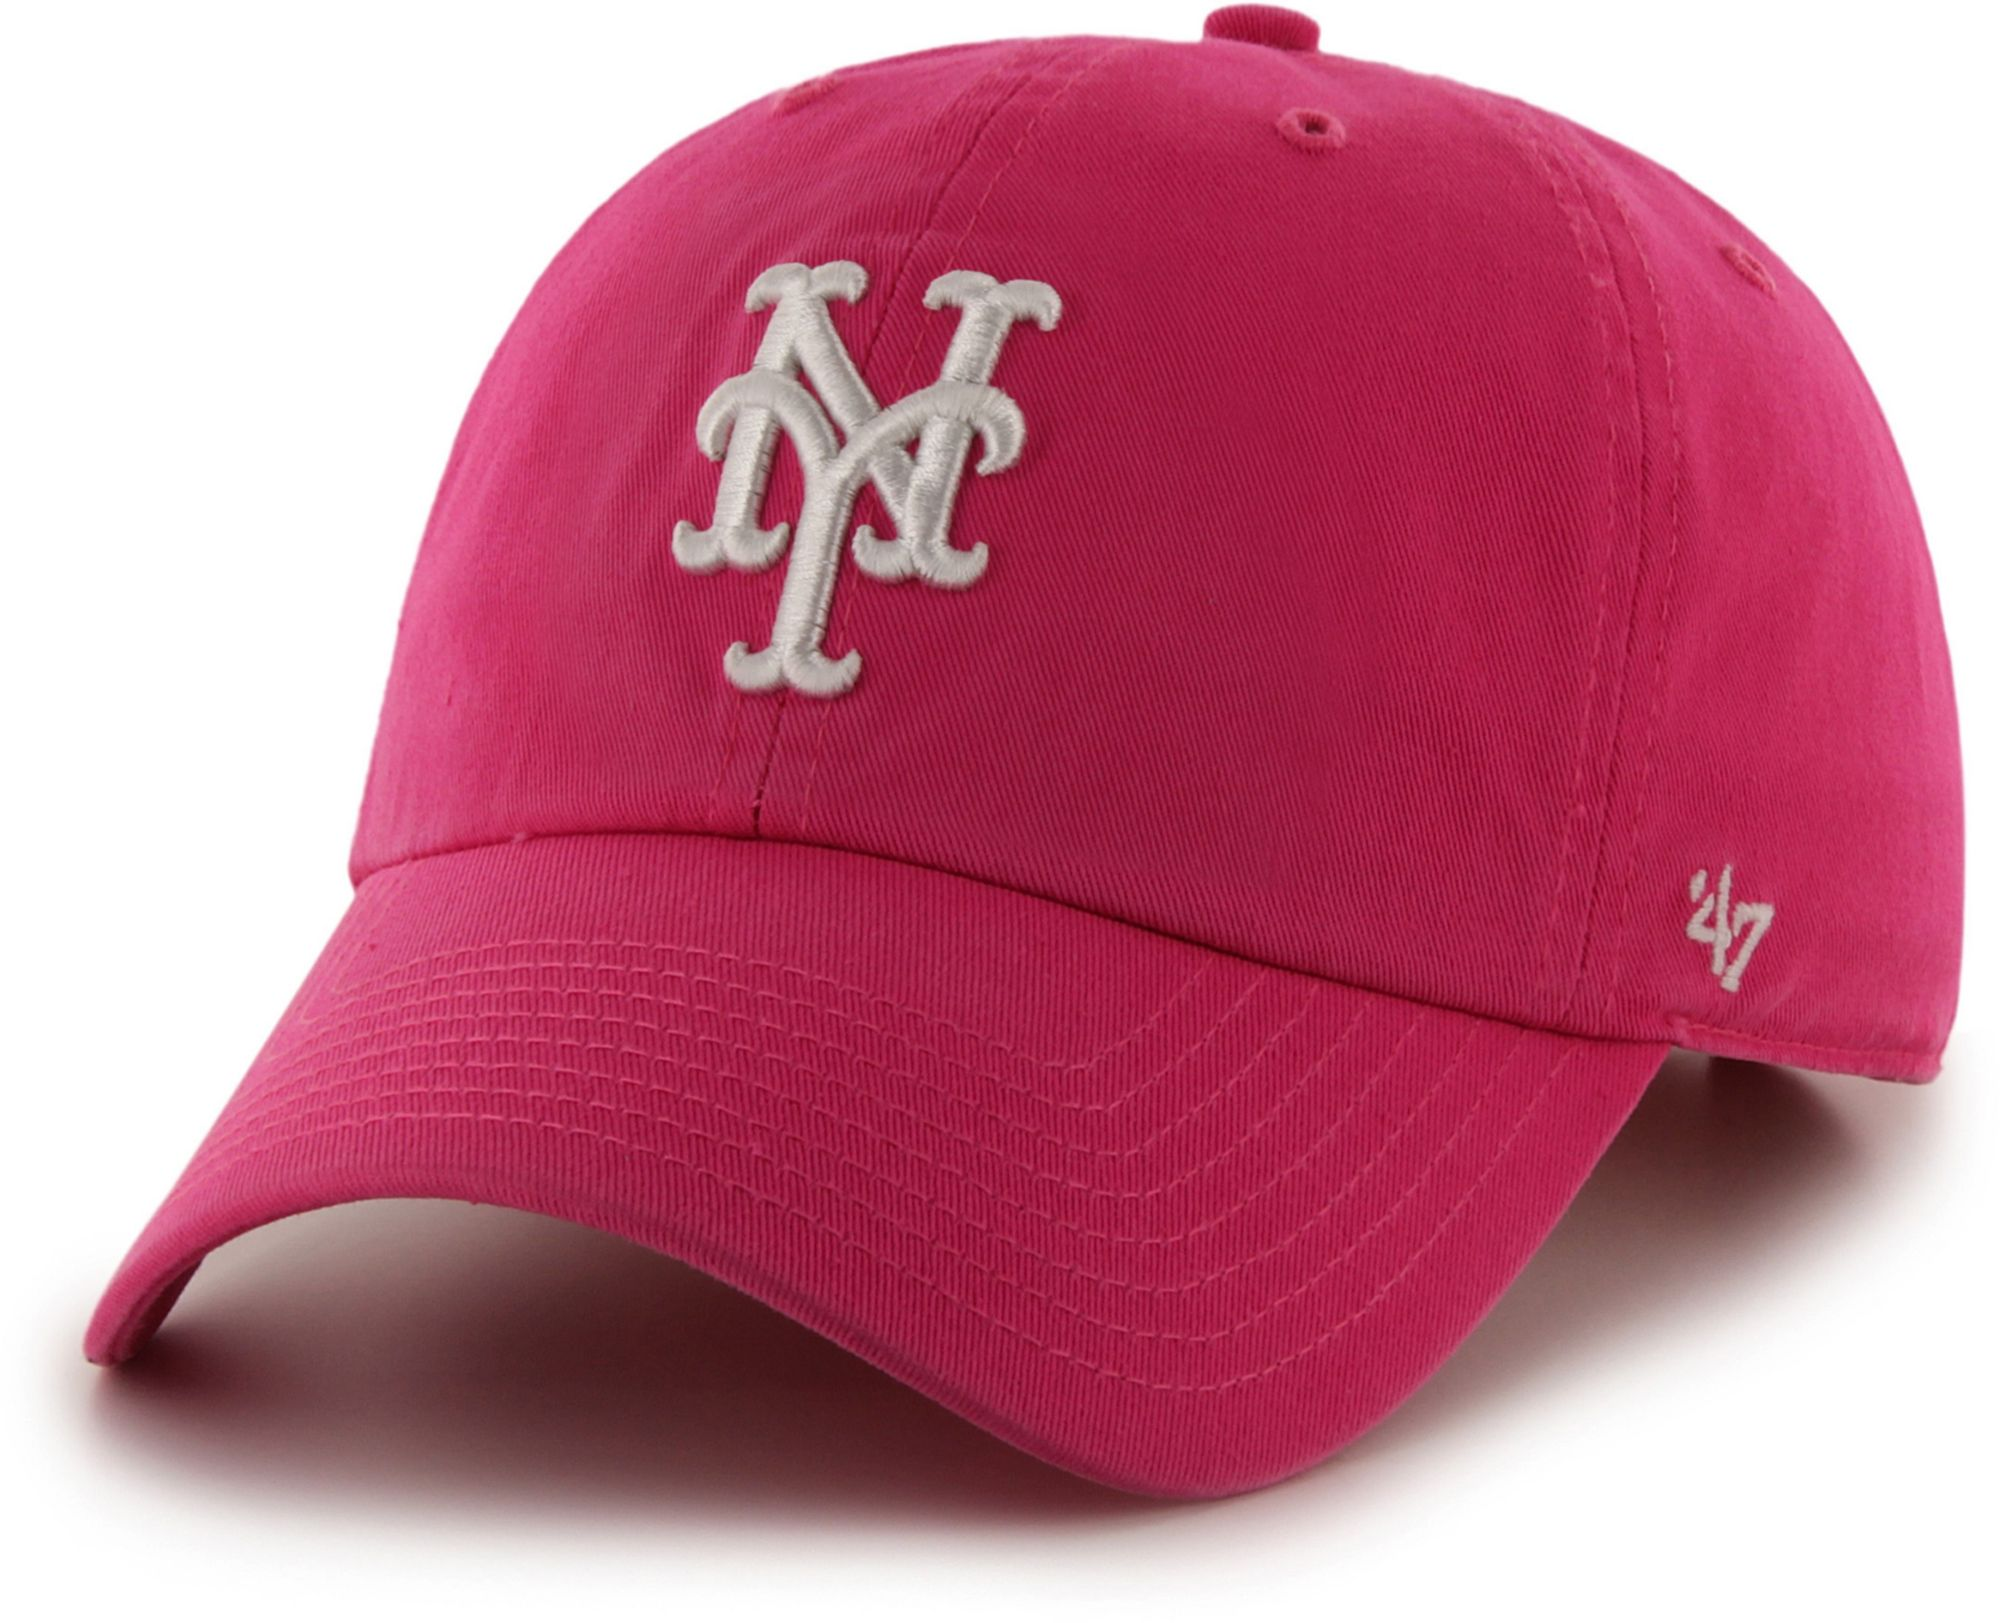 dbc69c9089a49e ... where to buy 47 womens new york mets clean up adjustable hat 8daad f34b9